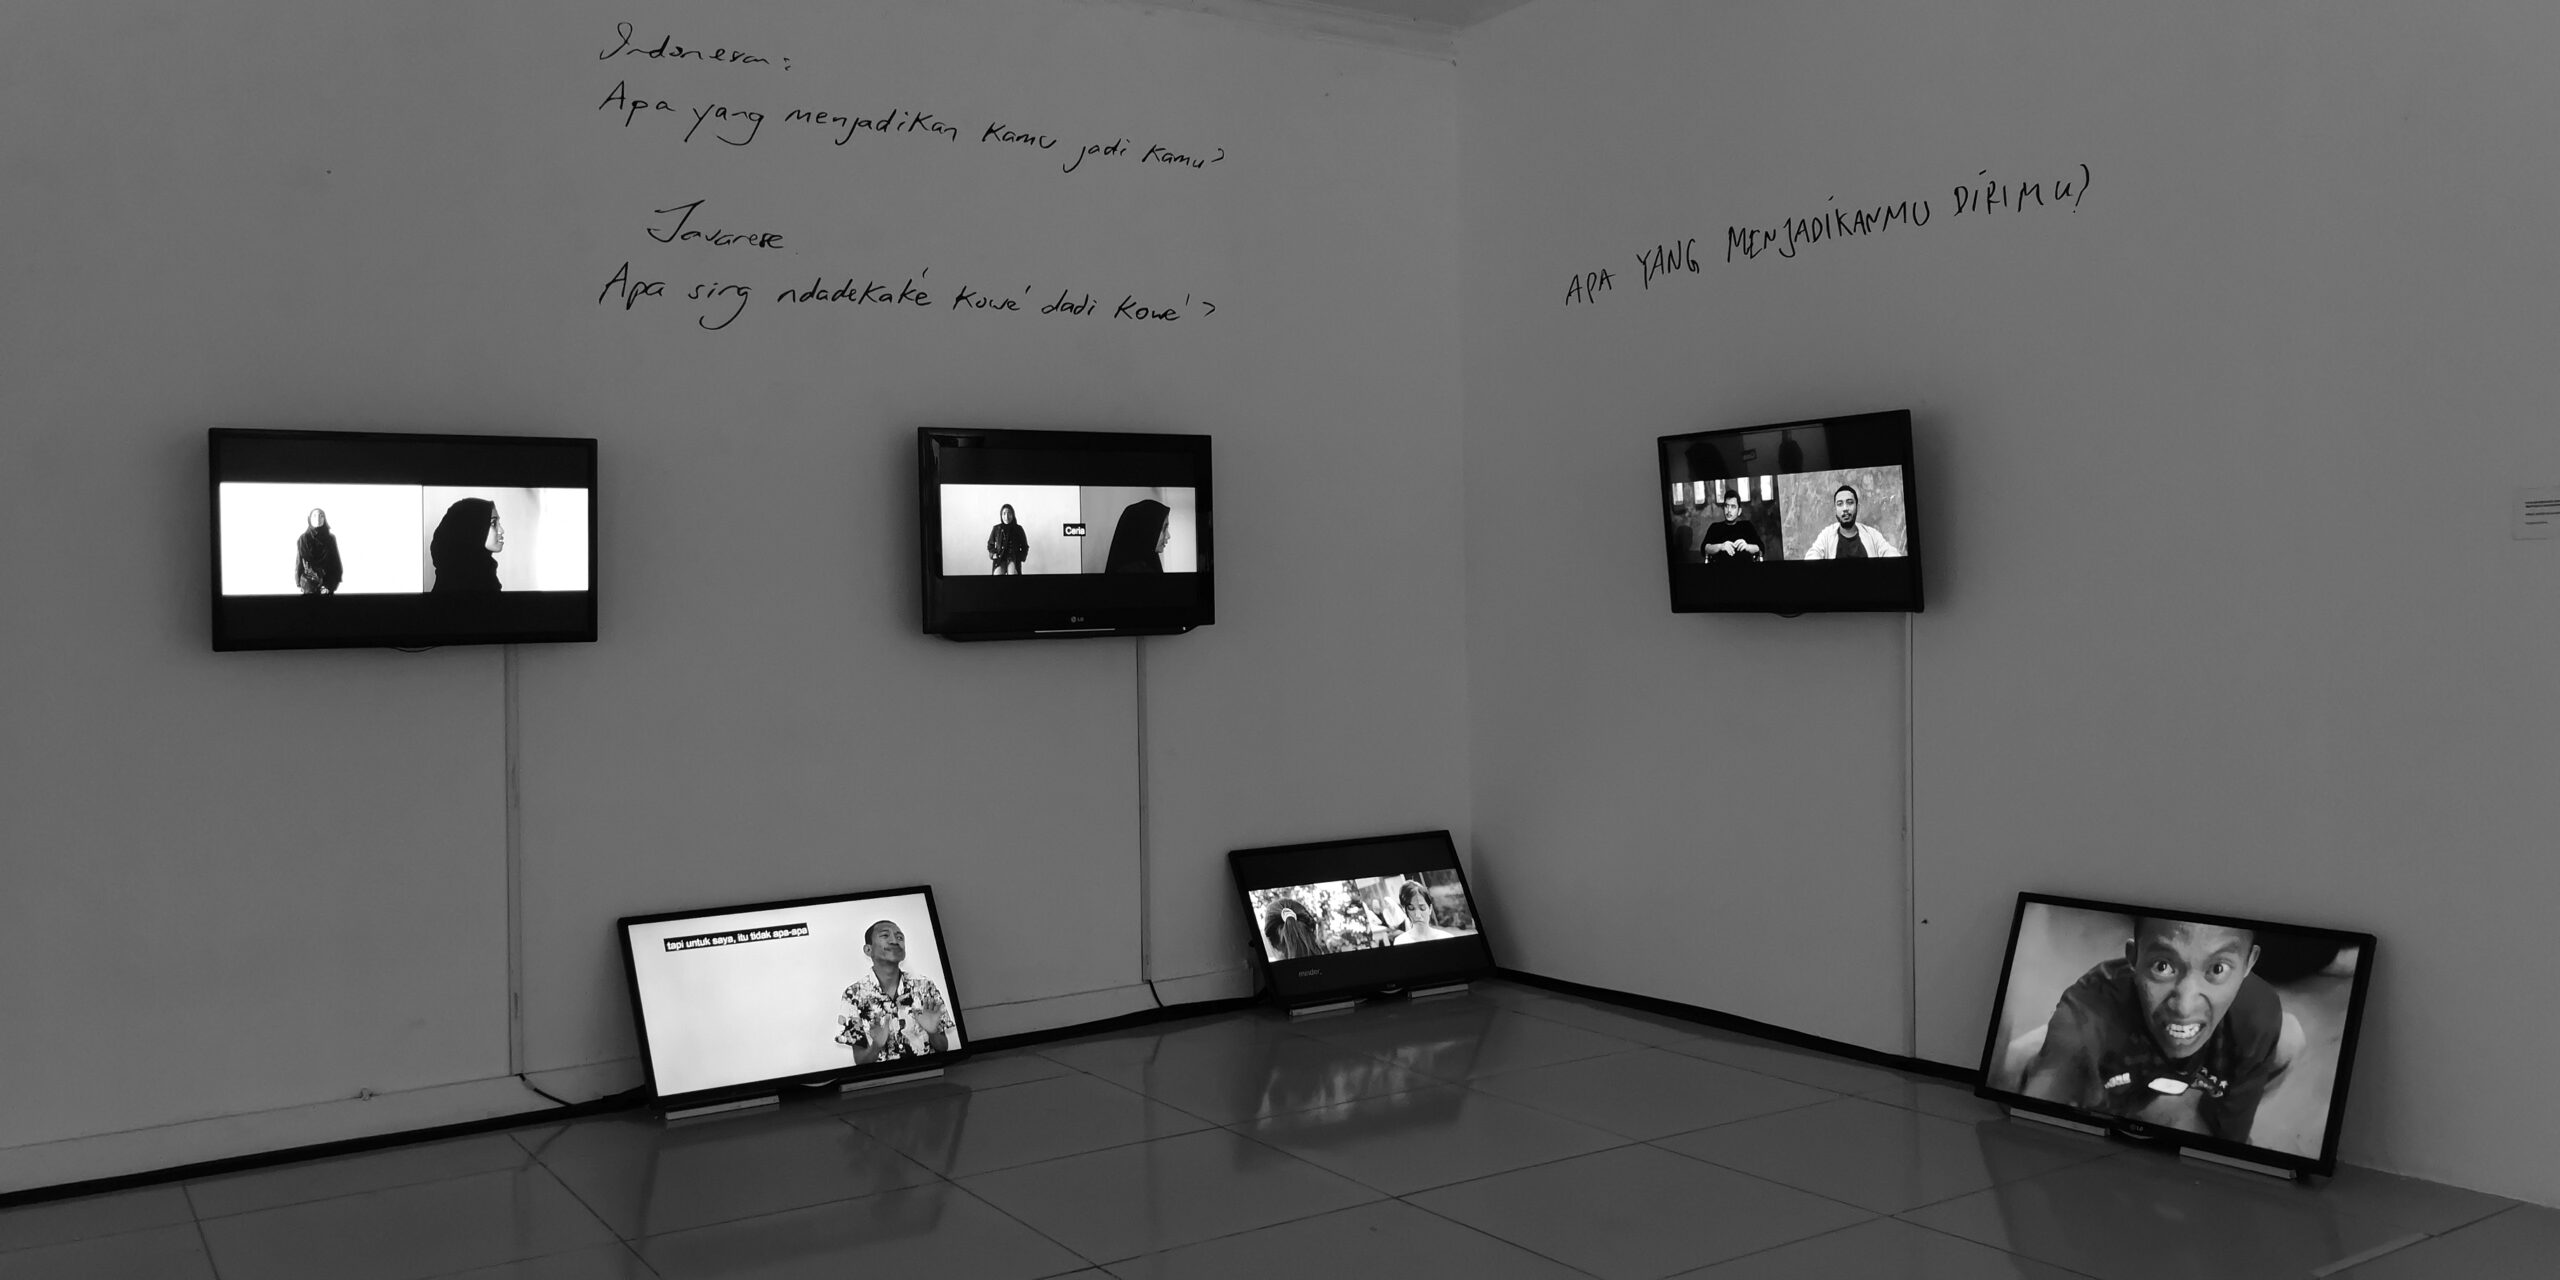 Video installation of multiple monitors, hung on walls and resting on the floor, beneath handwritten words scrawled on the walls.